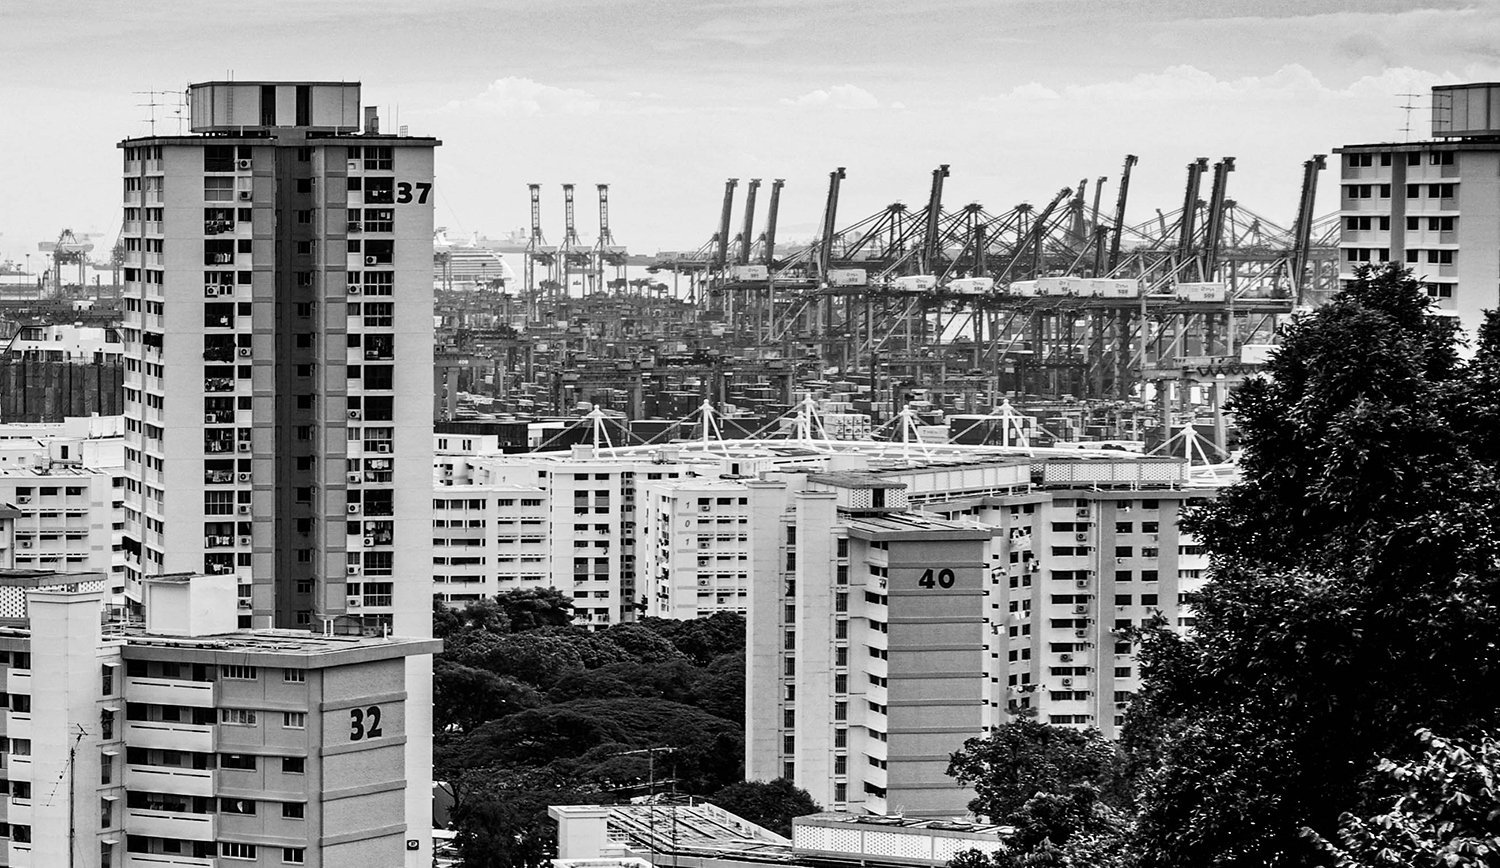 <p>A view over Singapore's public housing blocks and cranes at the city-state's immense container terminals.<br /></p>